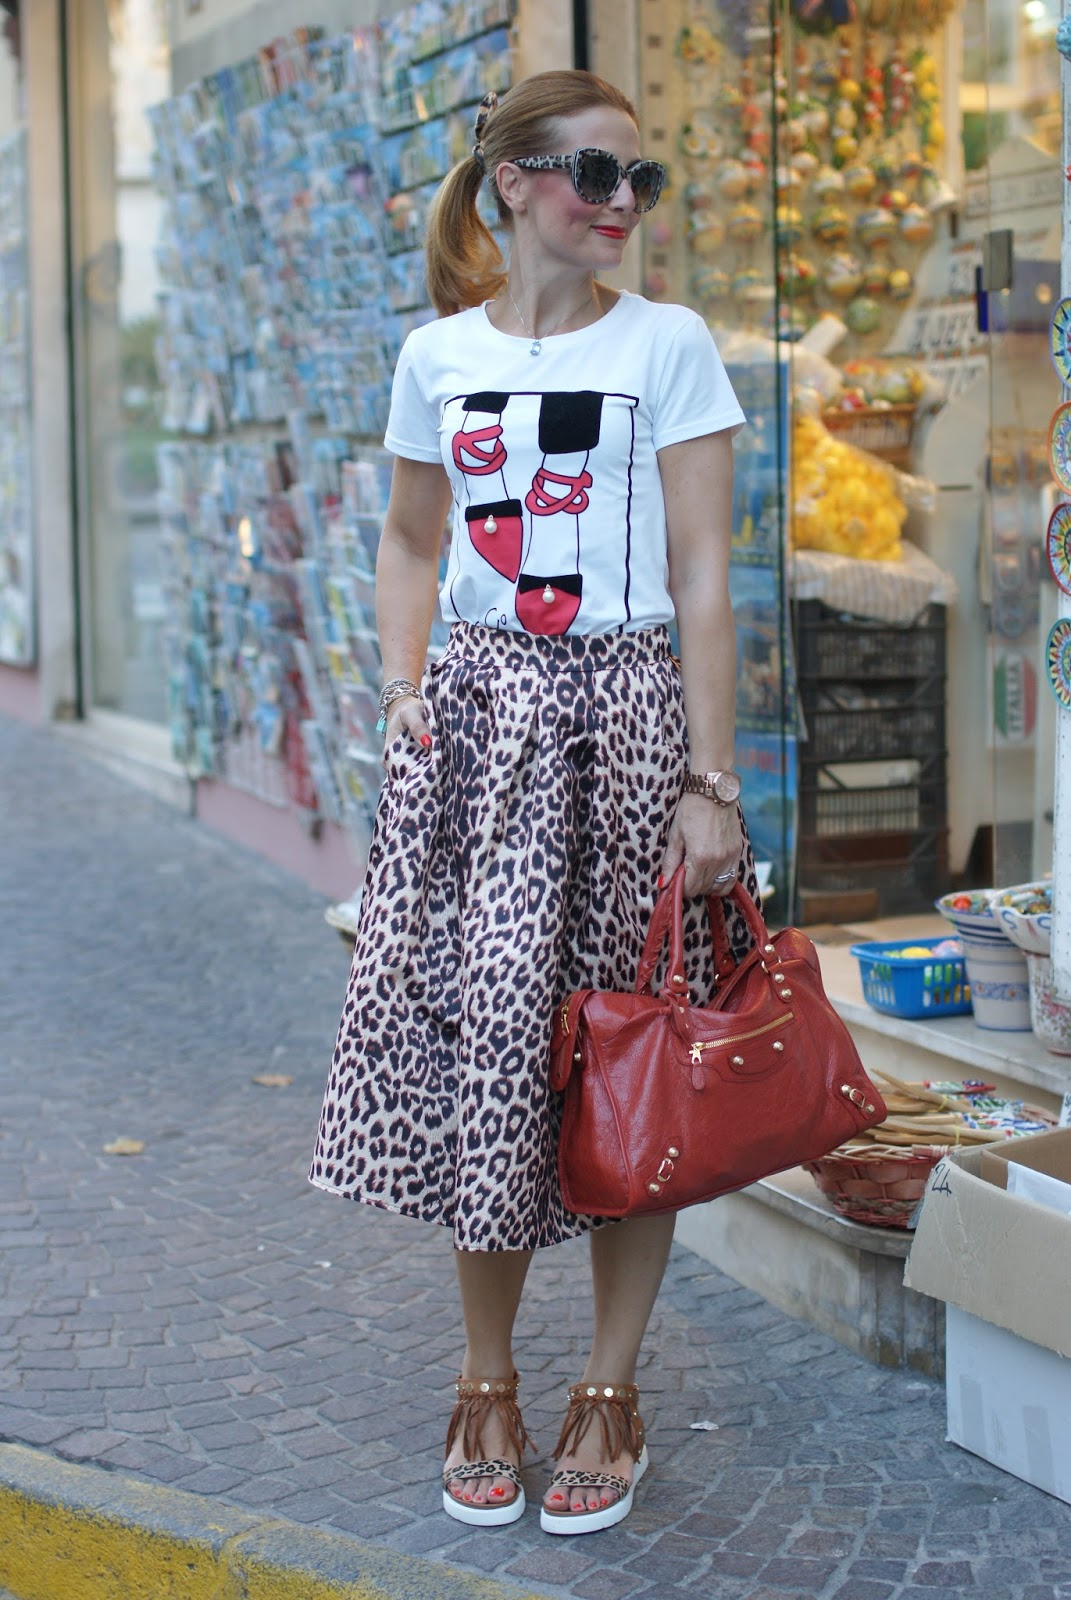 Leopard print is the new neutral with Dolce & Gabbana sunglasses found on Giarre.com, leopard print midi skirt on Fashion and Cookies fashion blog, fashion blogger style